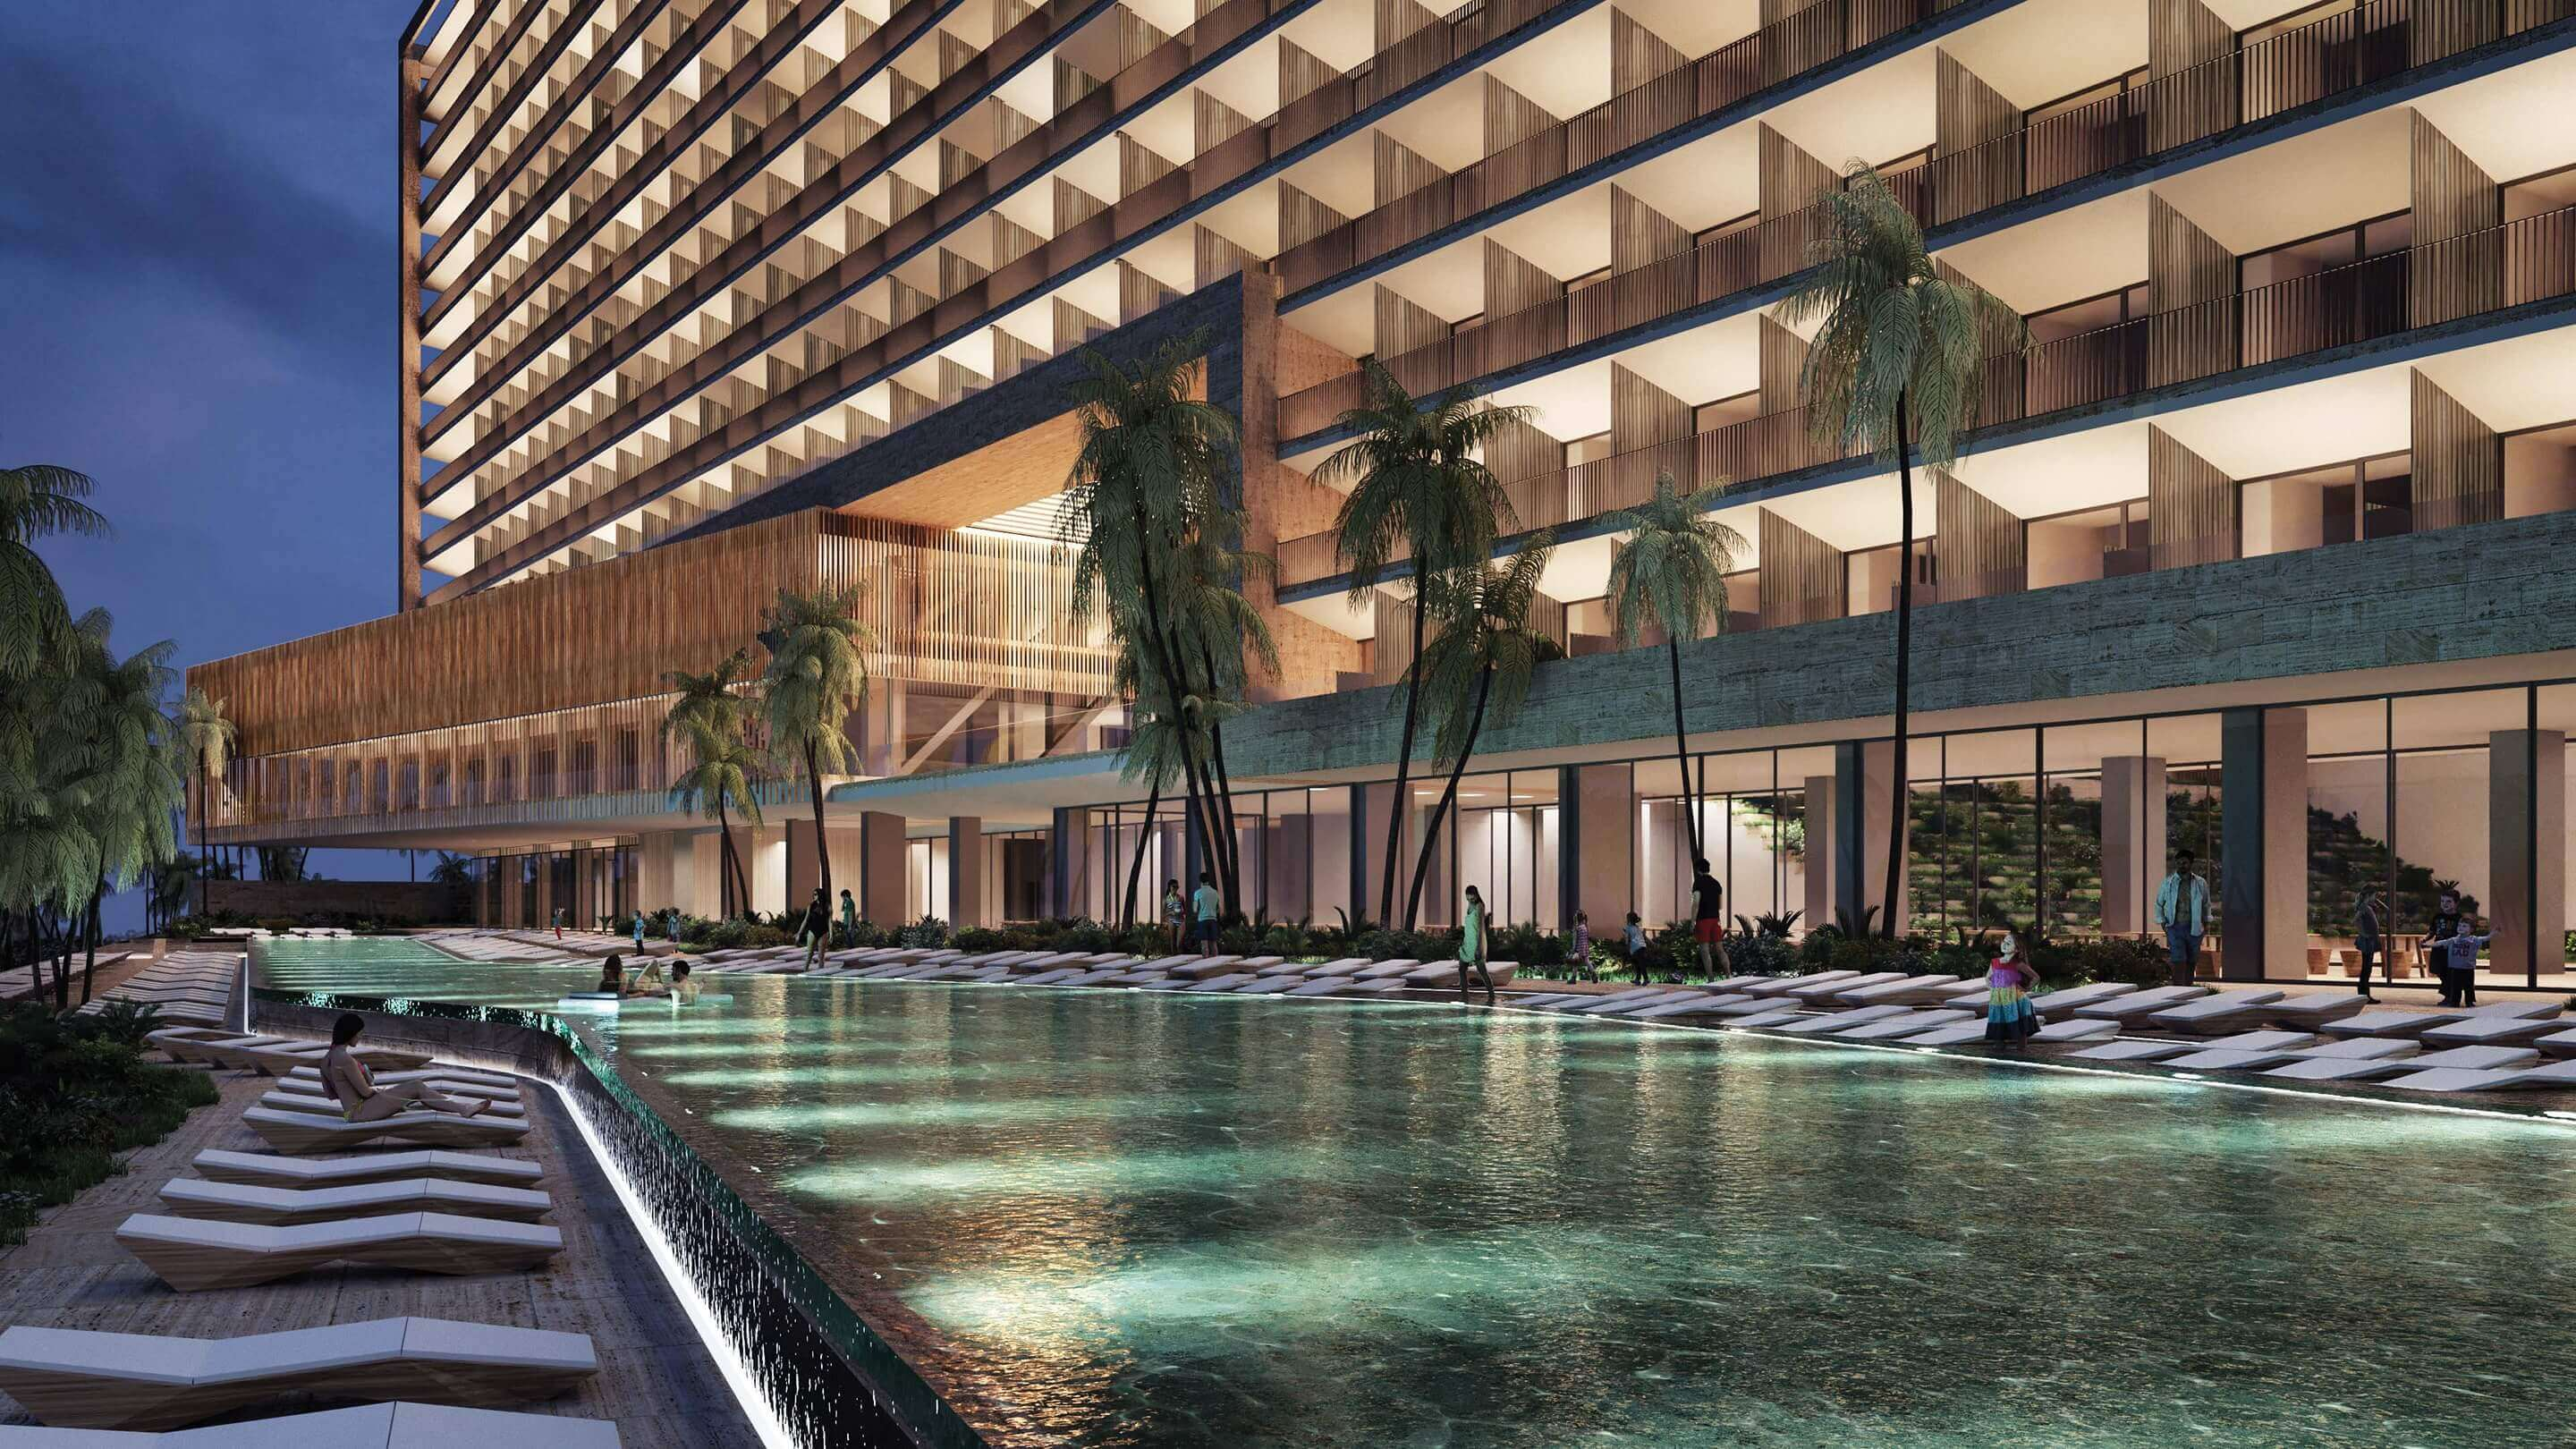 render of the pool area at dusk, dreams vista cancun